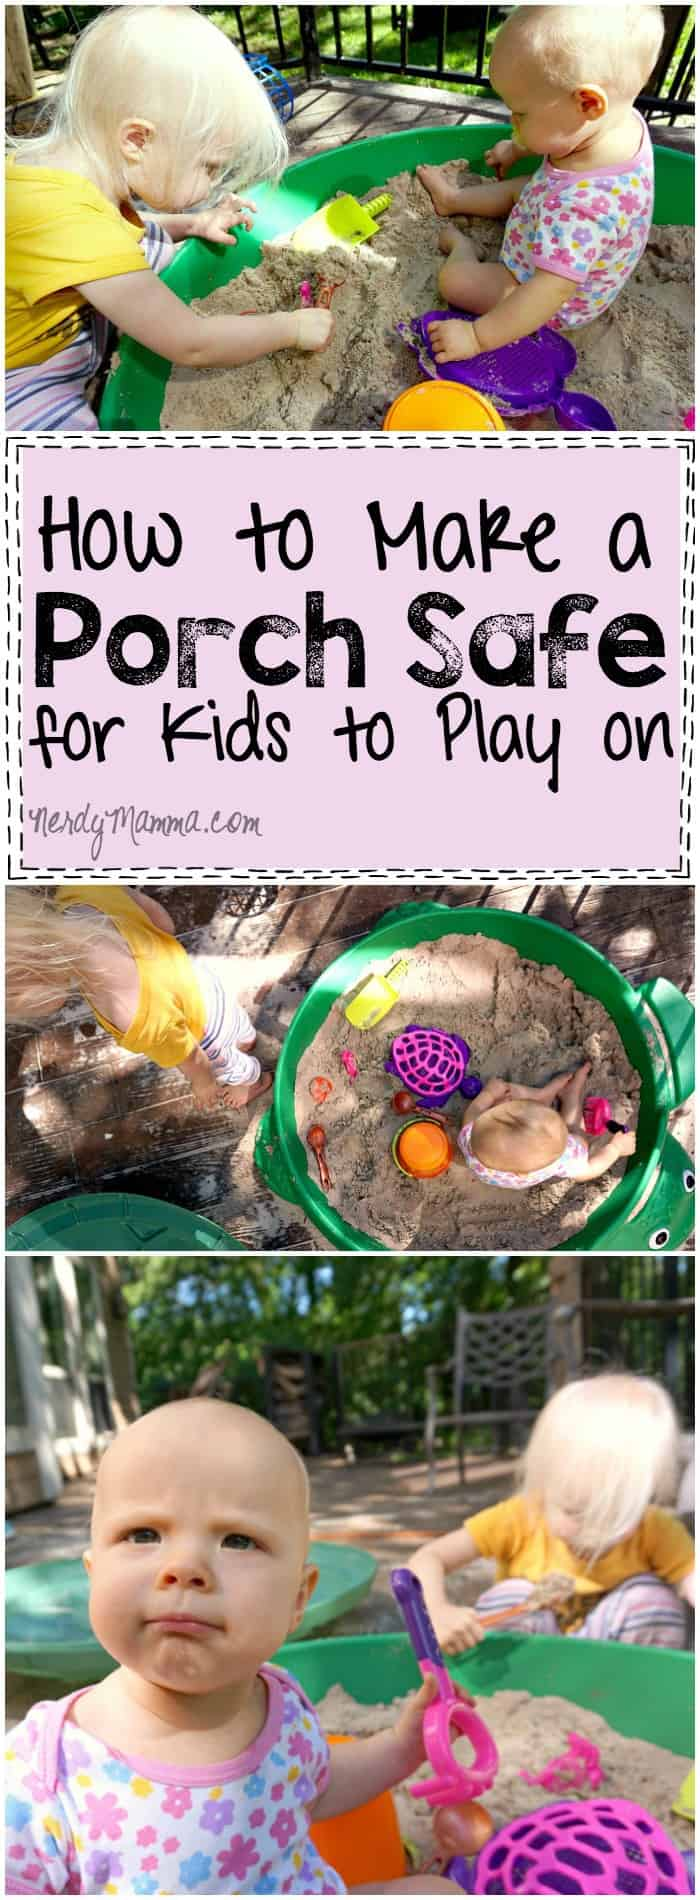 I love these ideas for making your porch safer for kids to play on--I hadn't thought about it...but it could prevent so many accidents!